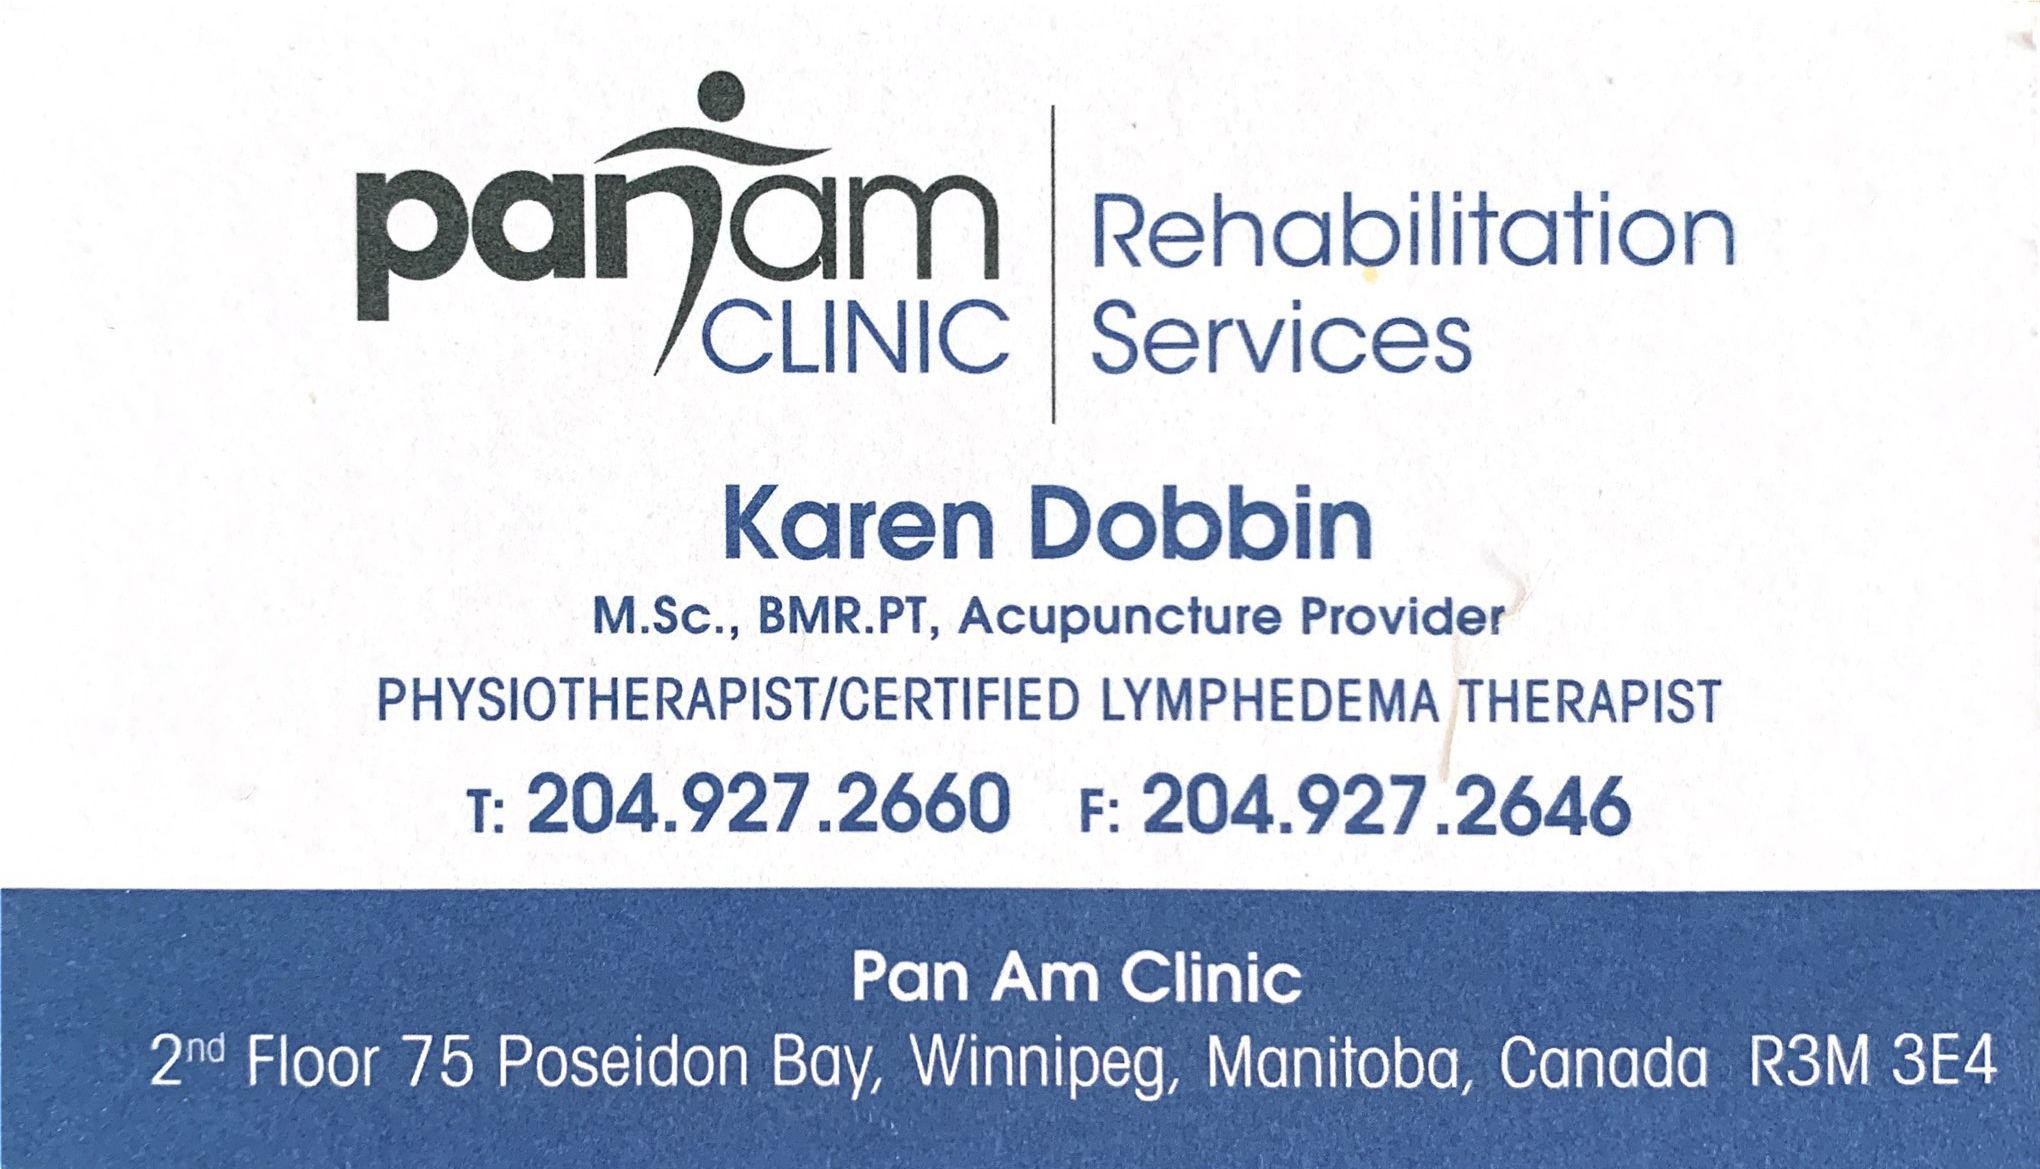 Pan Am Clinic - Karen Dobbin